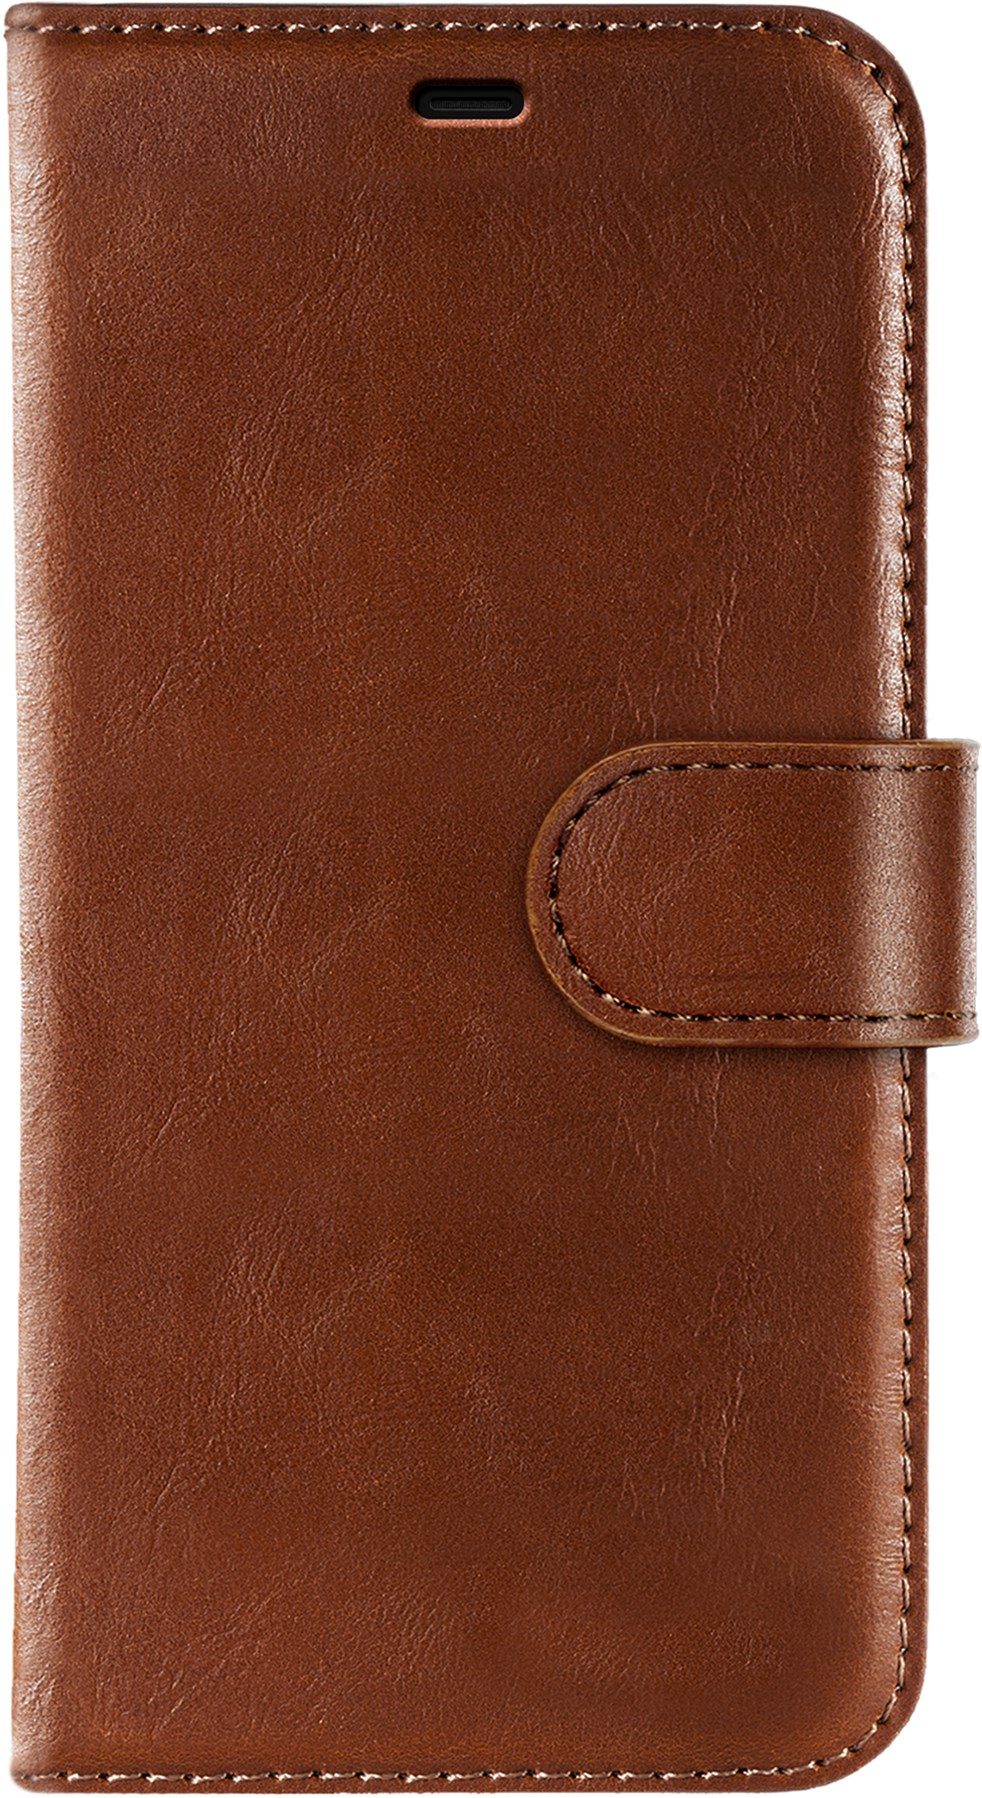 iDeal of Sweden Ideal Magnet Wallet + Iphone 11 Pro Max Brown